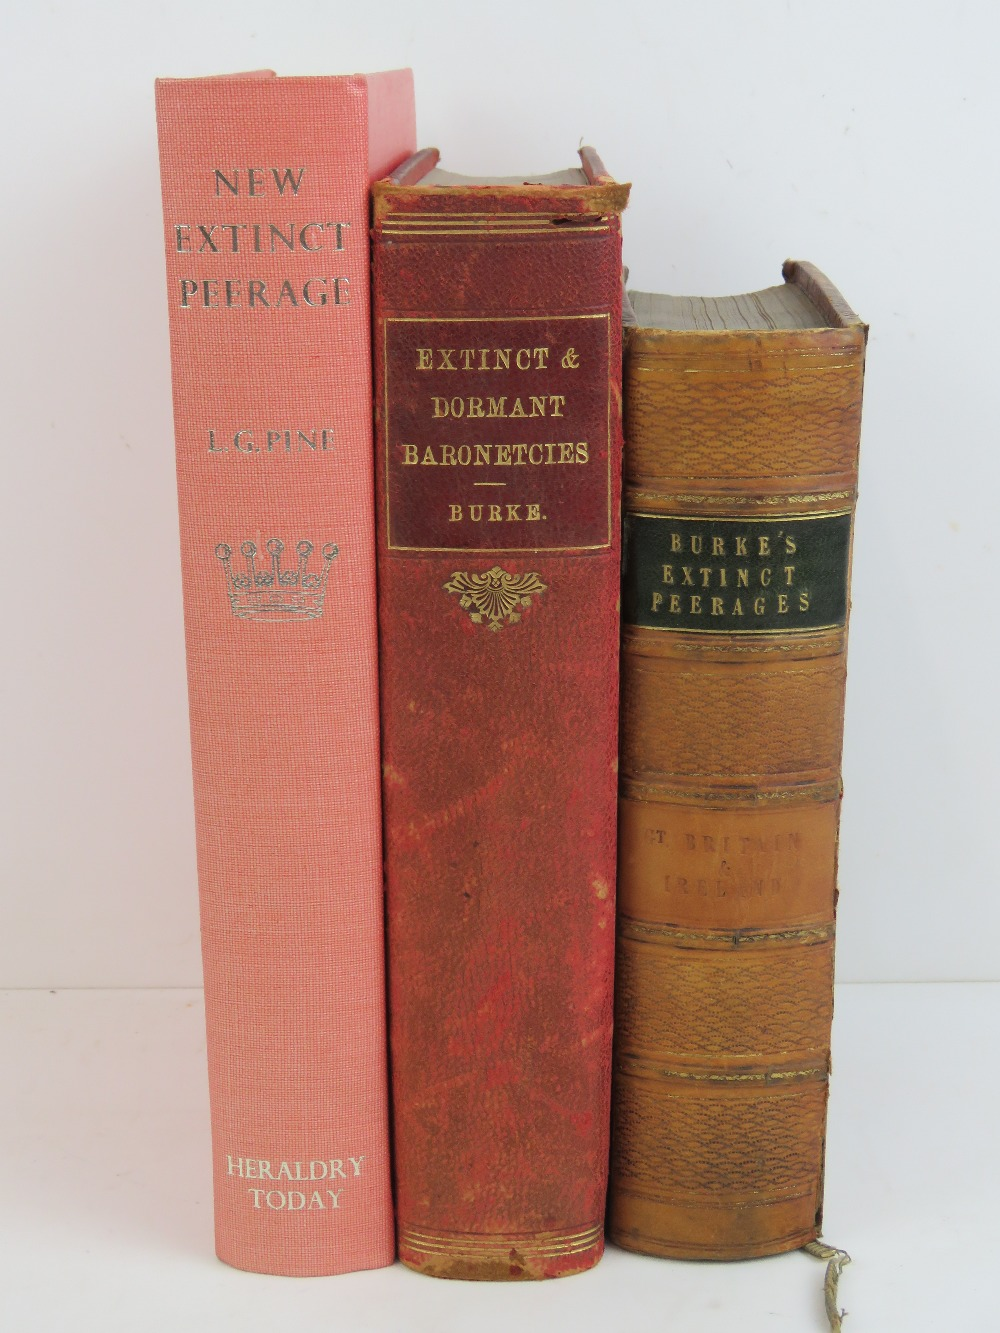 Lot 727 - Books; Birkes 'Extinct Peerages' 1840, l